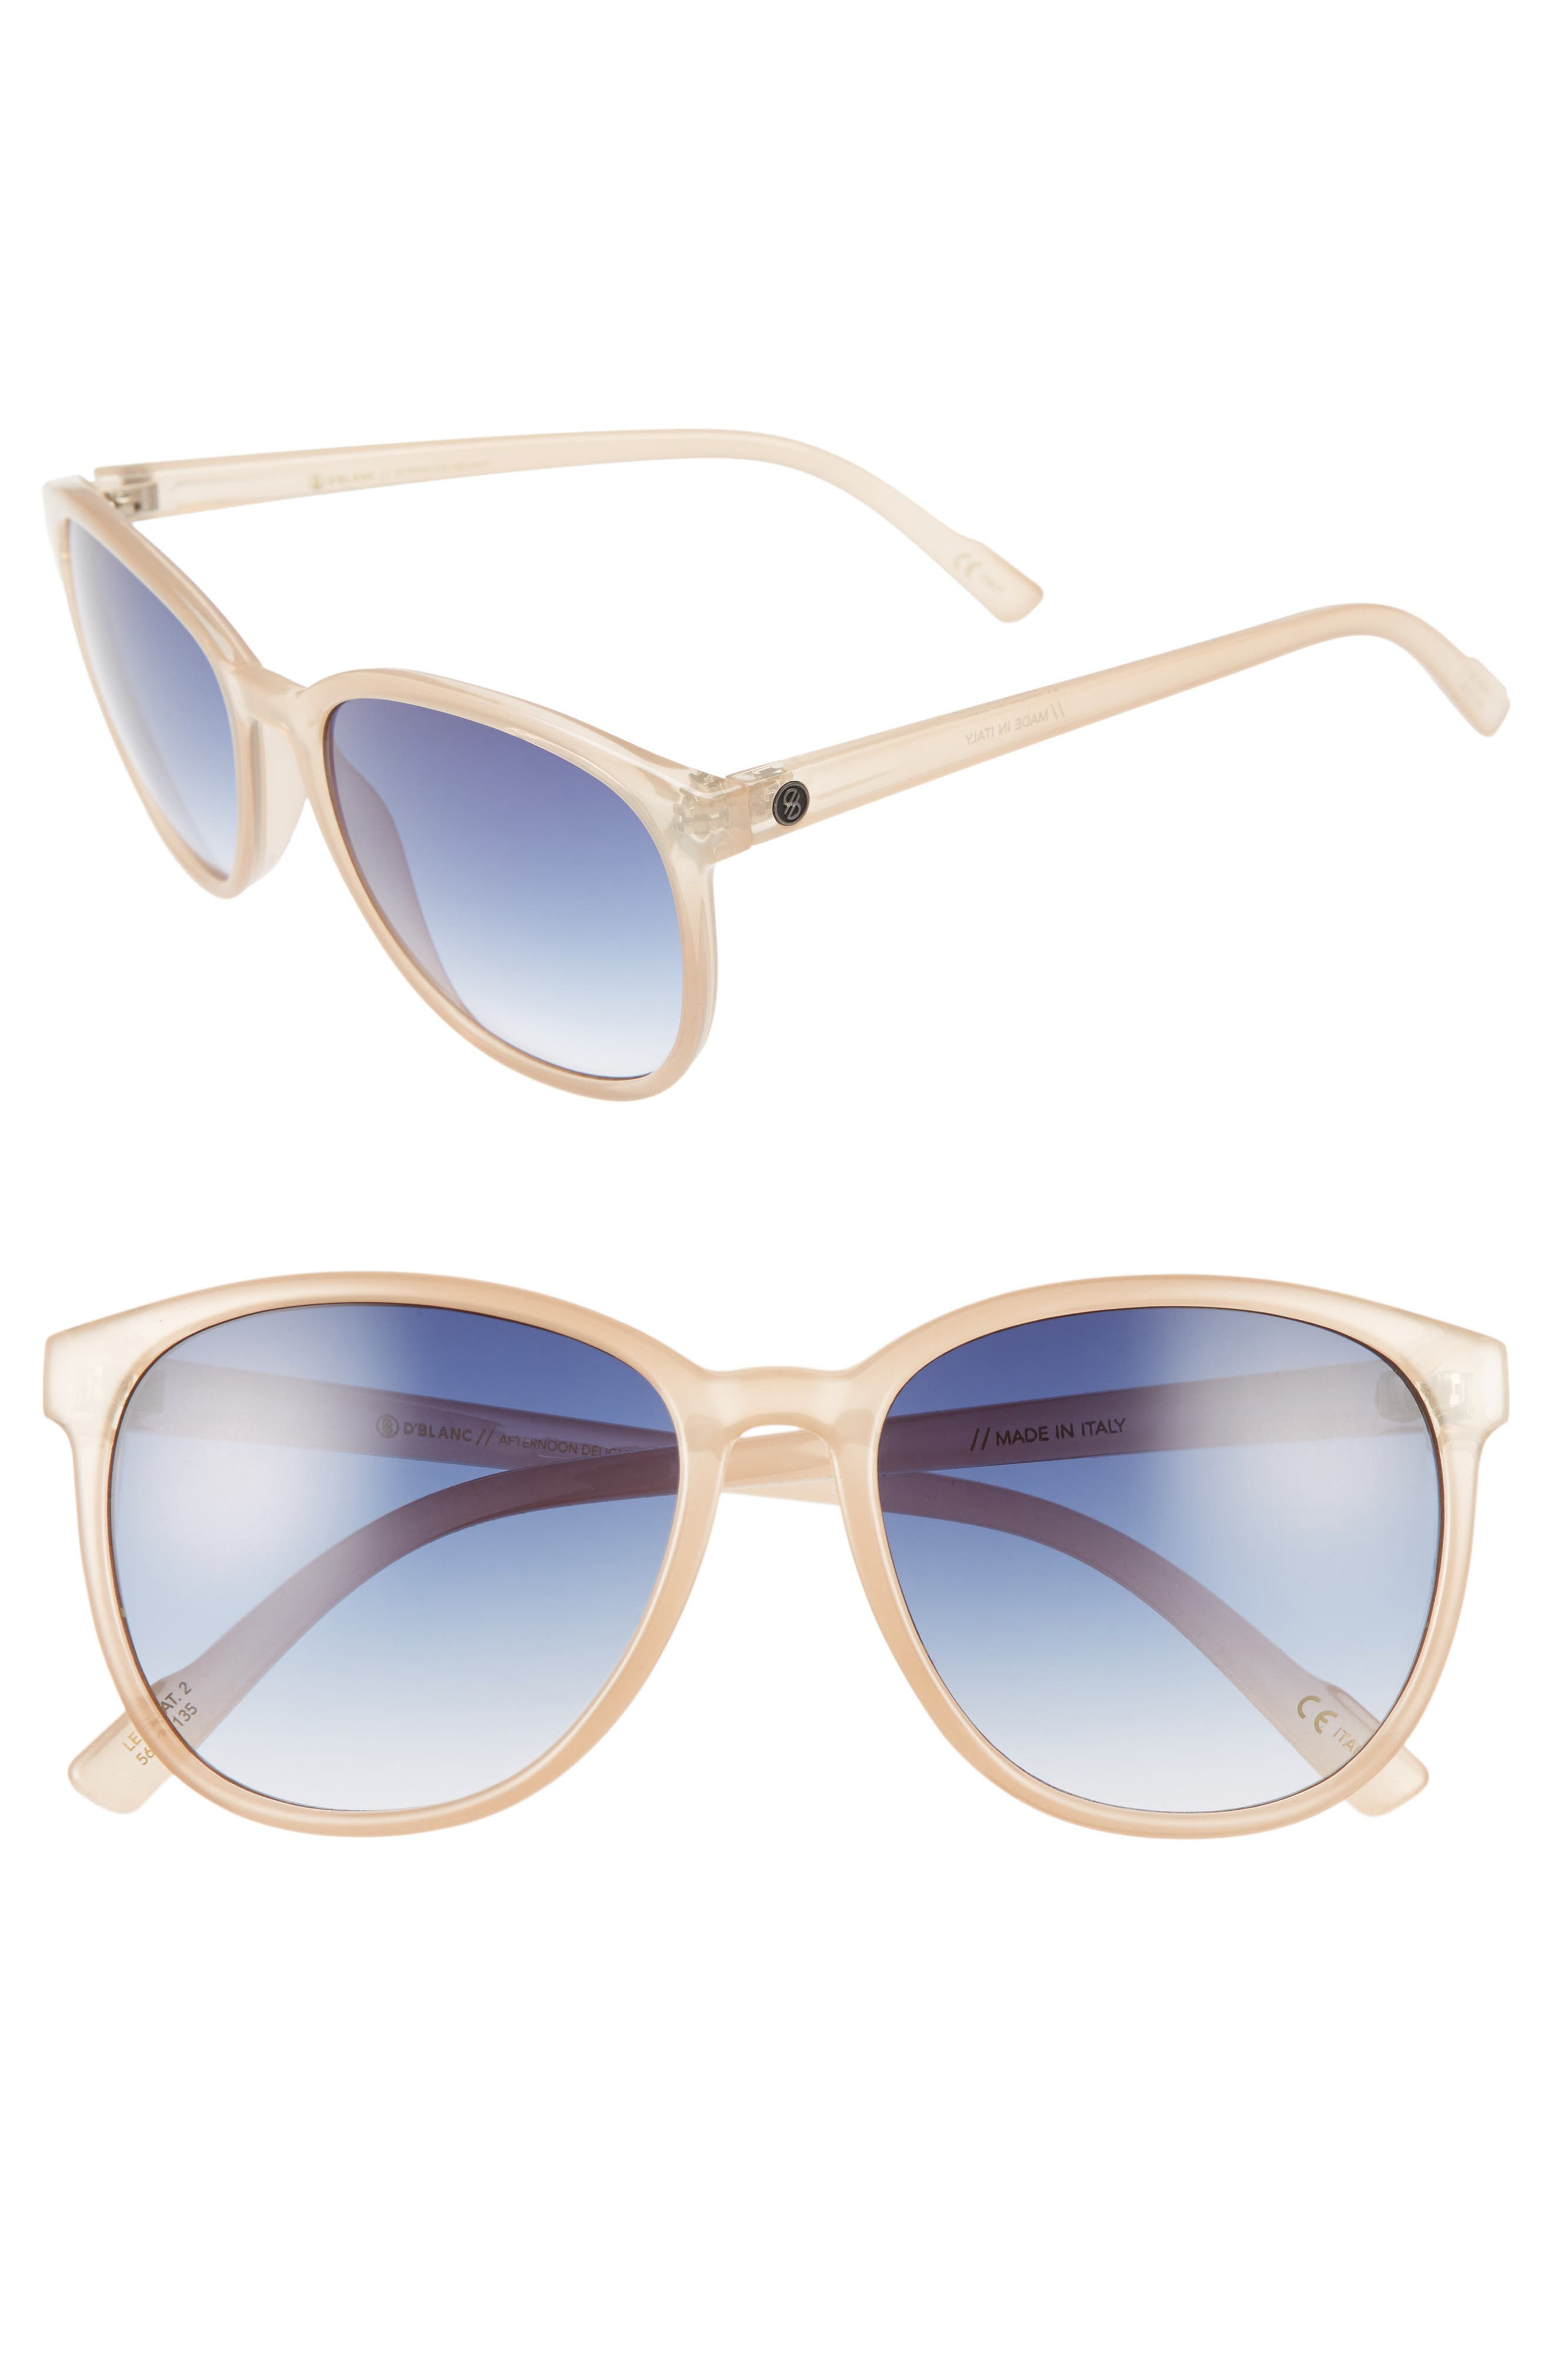 Alternate Image 1 Selected - D'BLANC Afternoon Delight 56mm Gradient Lens Sunglasses